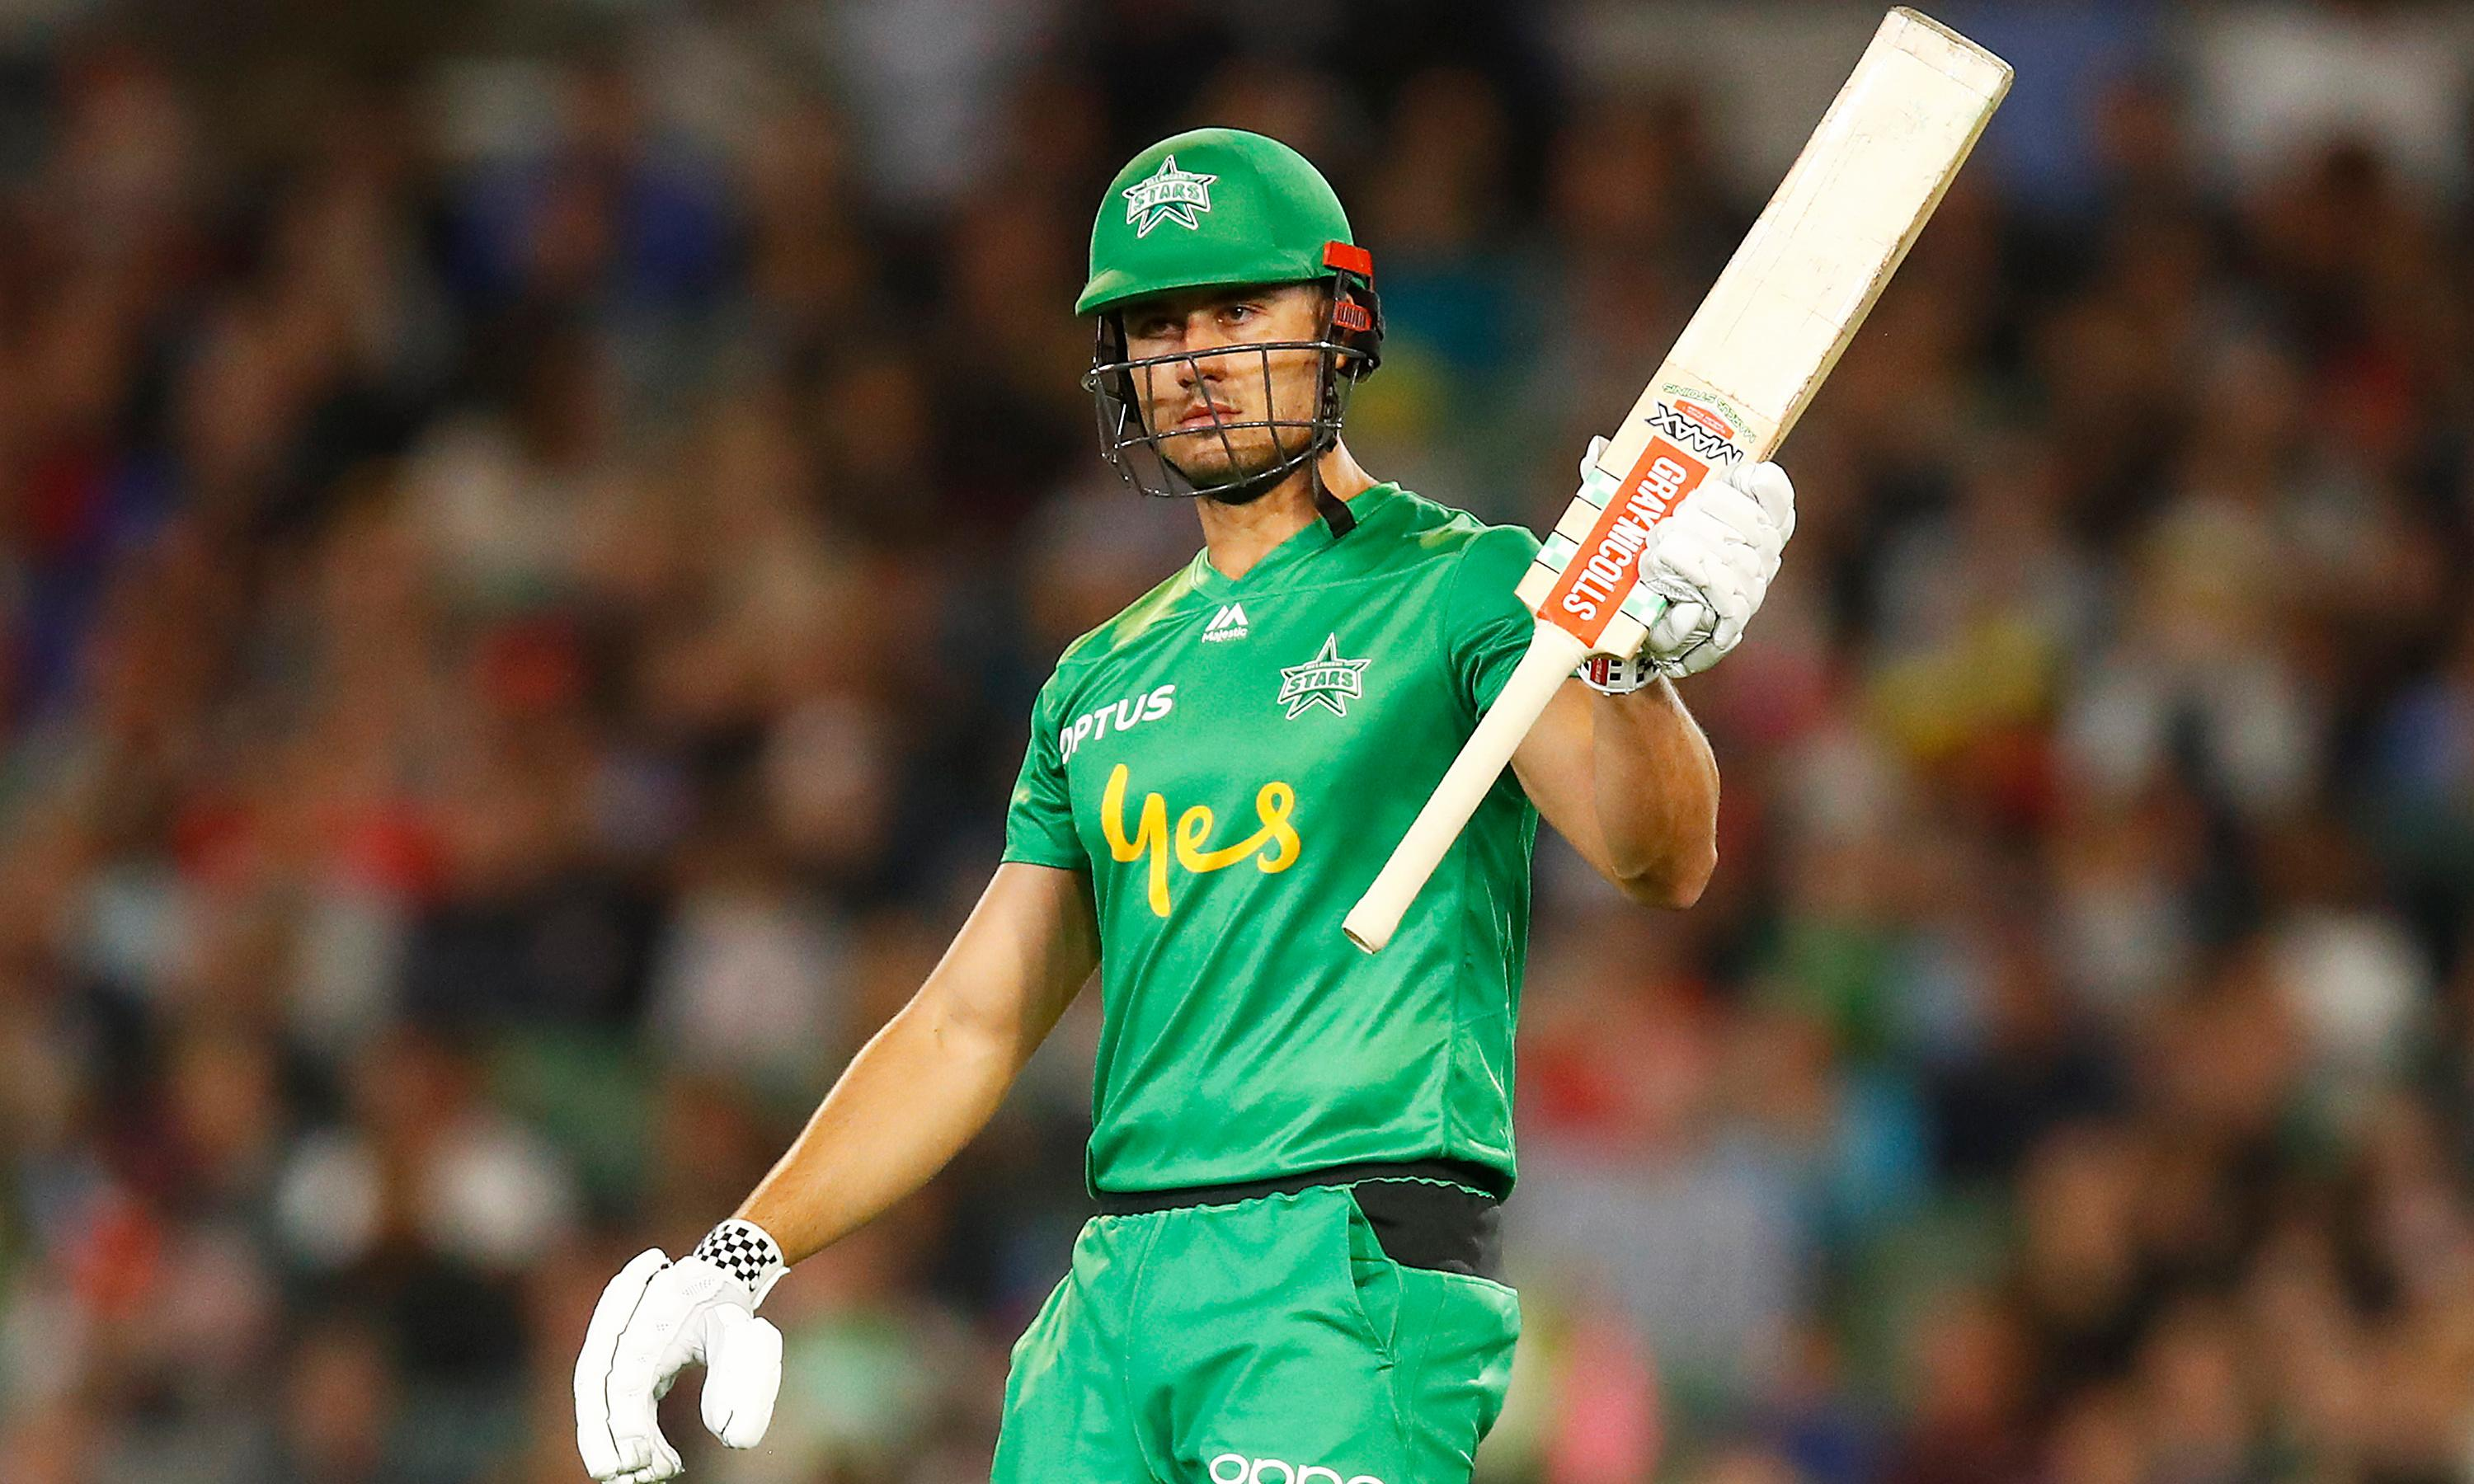 Marcus Stoinis fined $7,500 for homophobic slur during Big Bash League